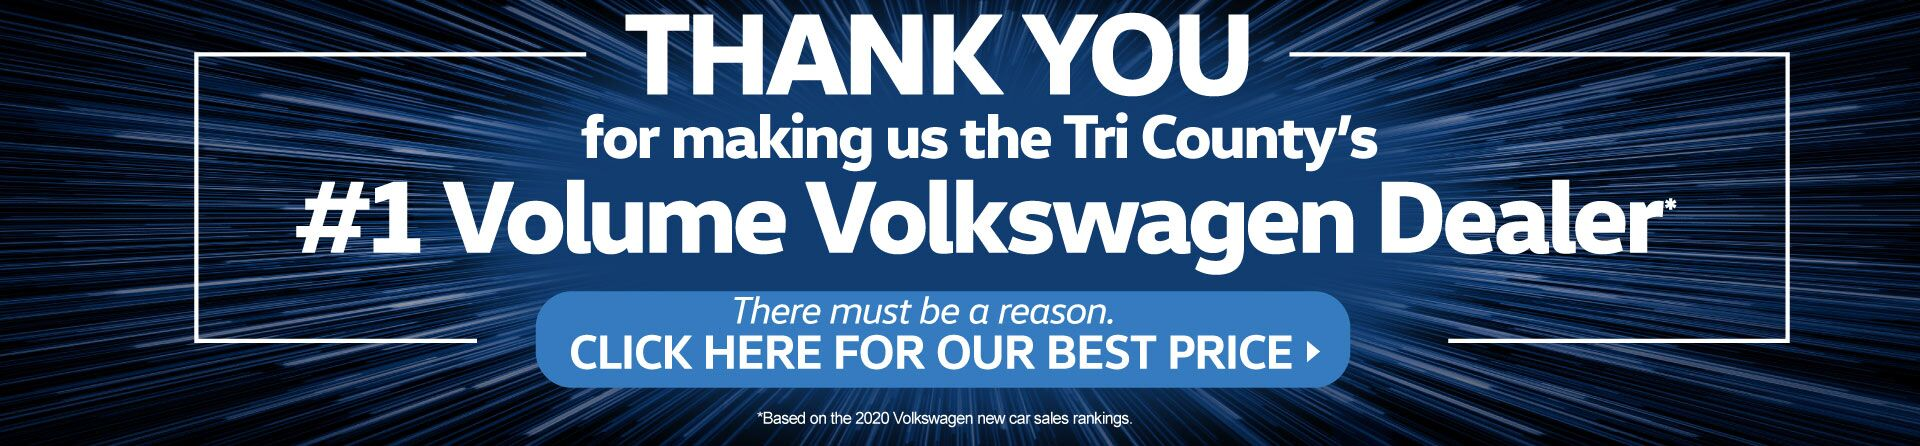 Thank You for making us the Tri County's #1 Volume Volkswagen Dealer